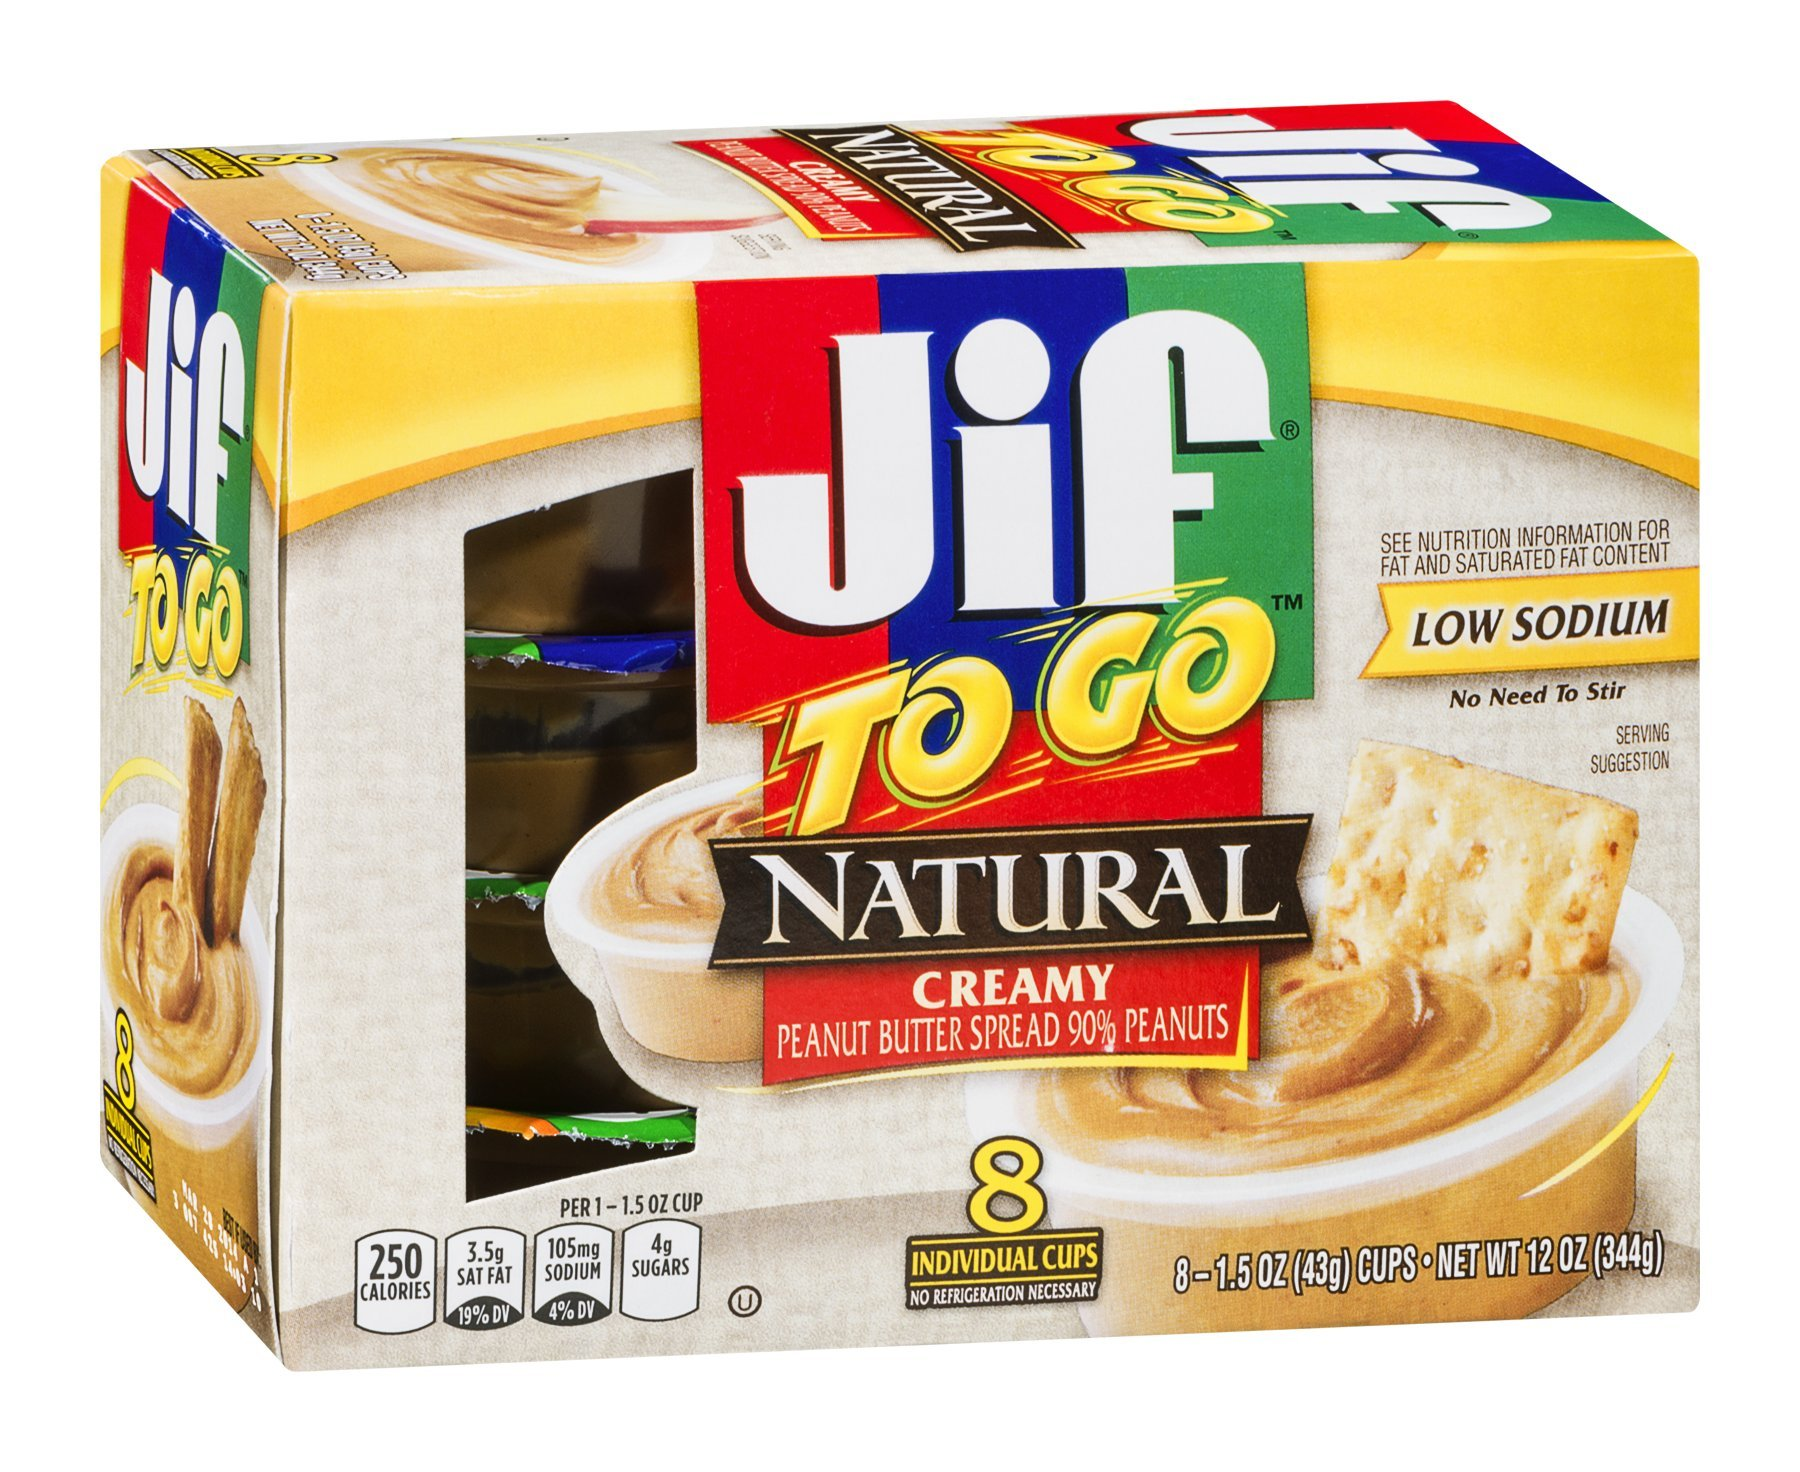 Jif to Go Natural Creamy Peanut Butter 8 Individual Cups (Pack of 6)